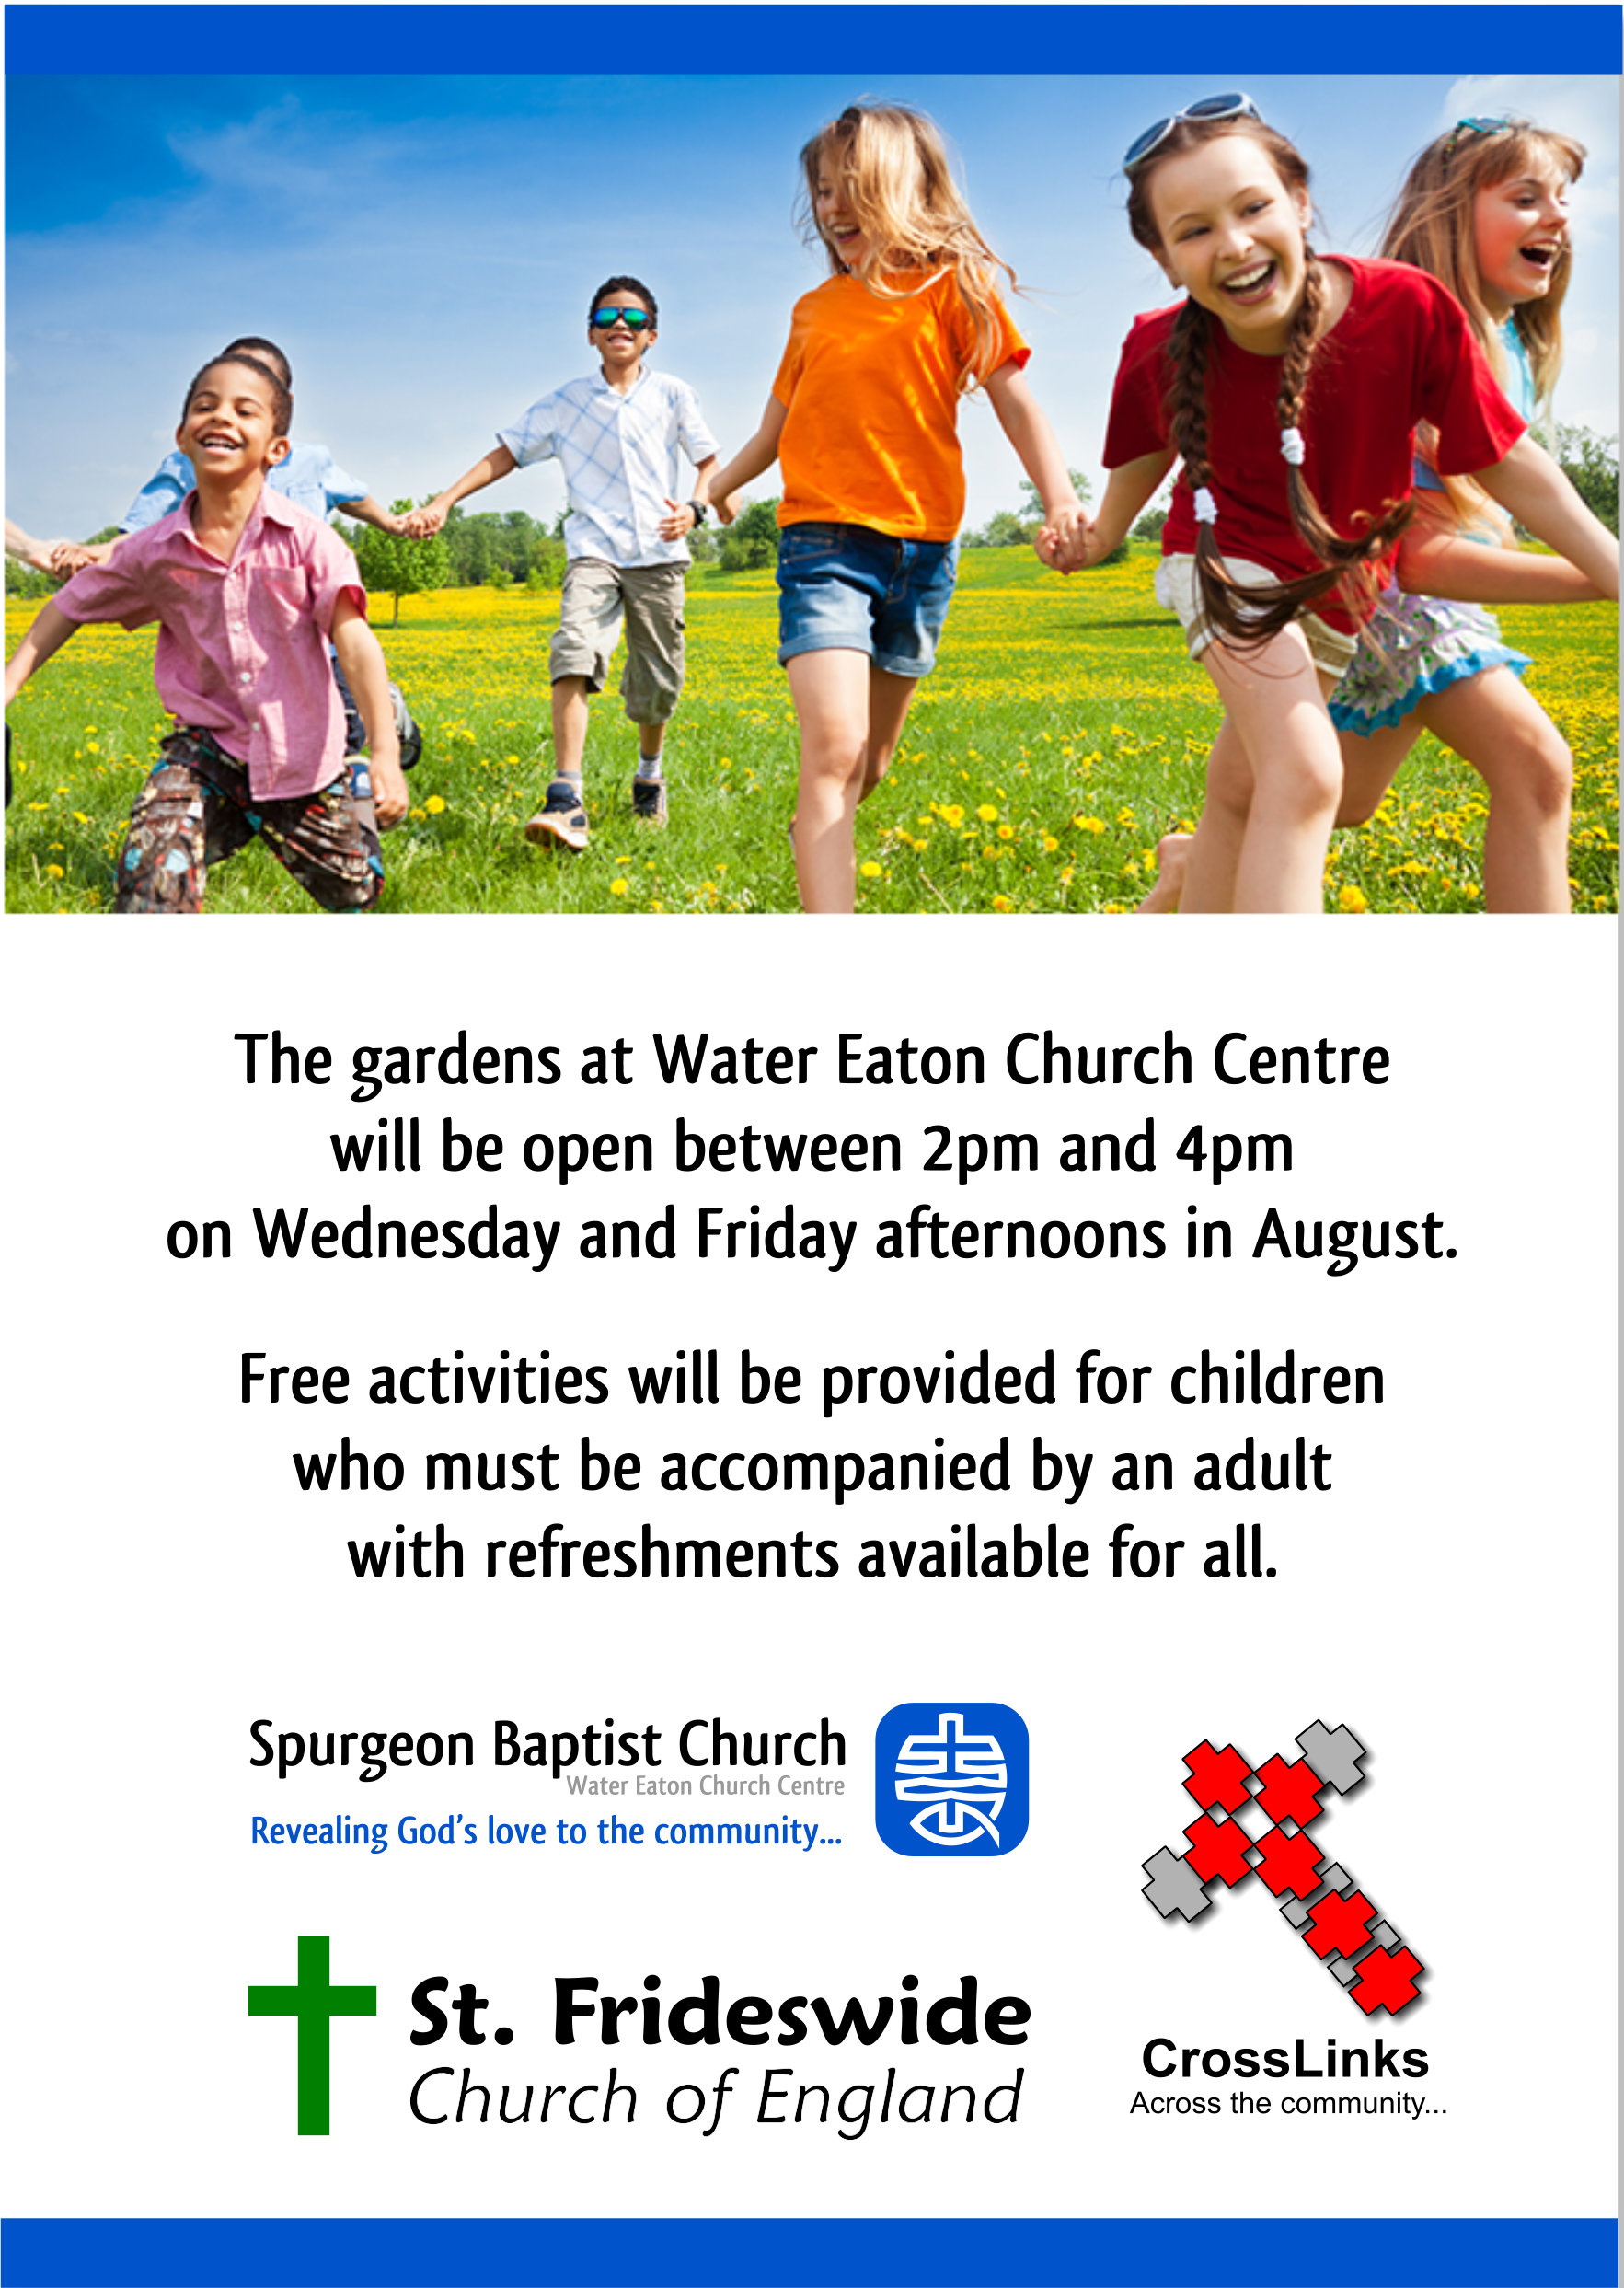 Free Garden Activities For Children, Wednesday and Friday afternoons in August